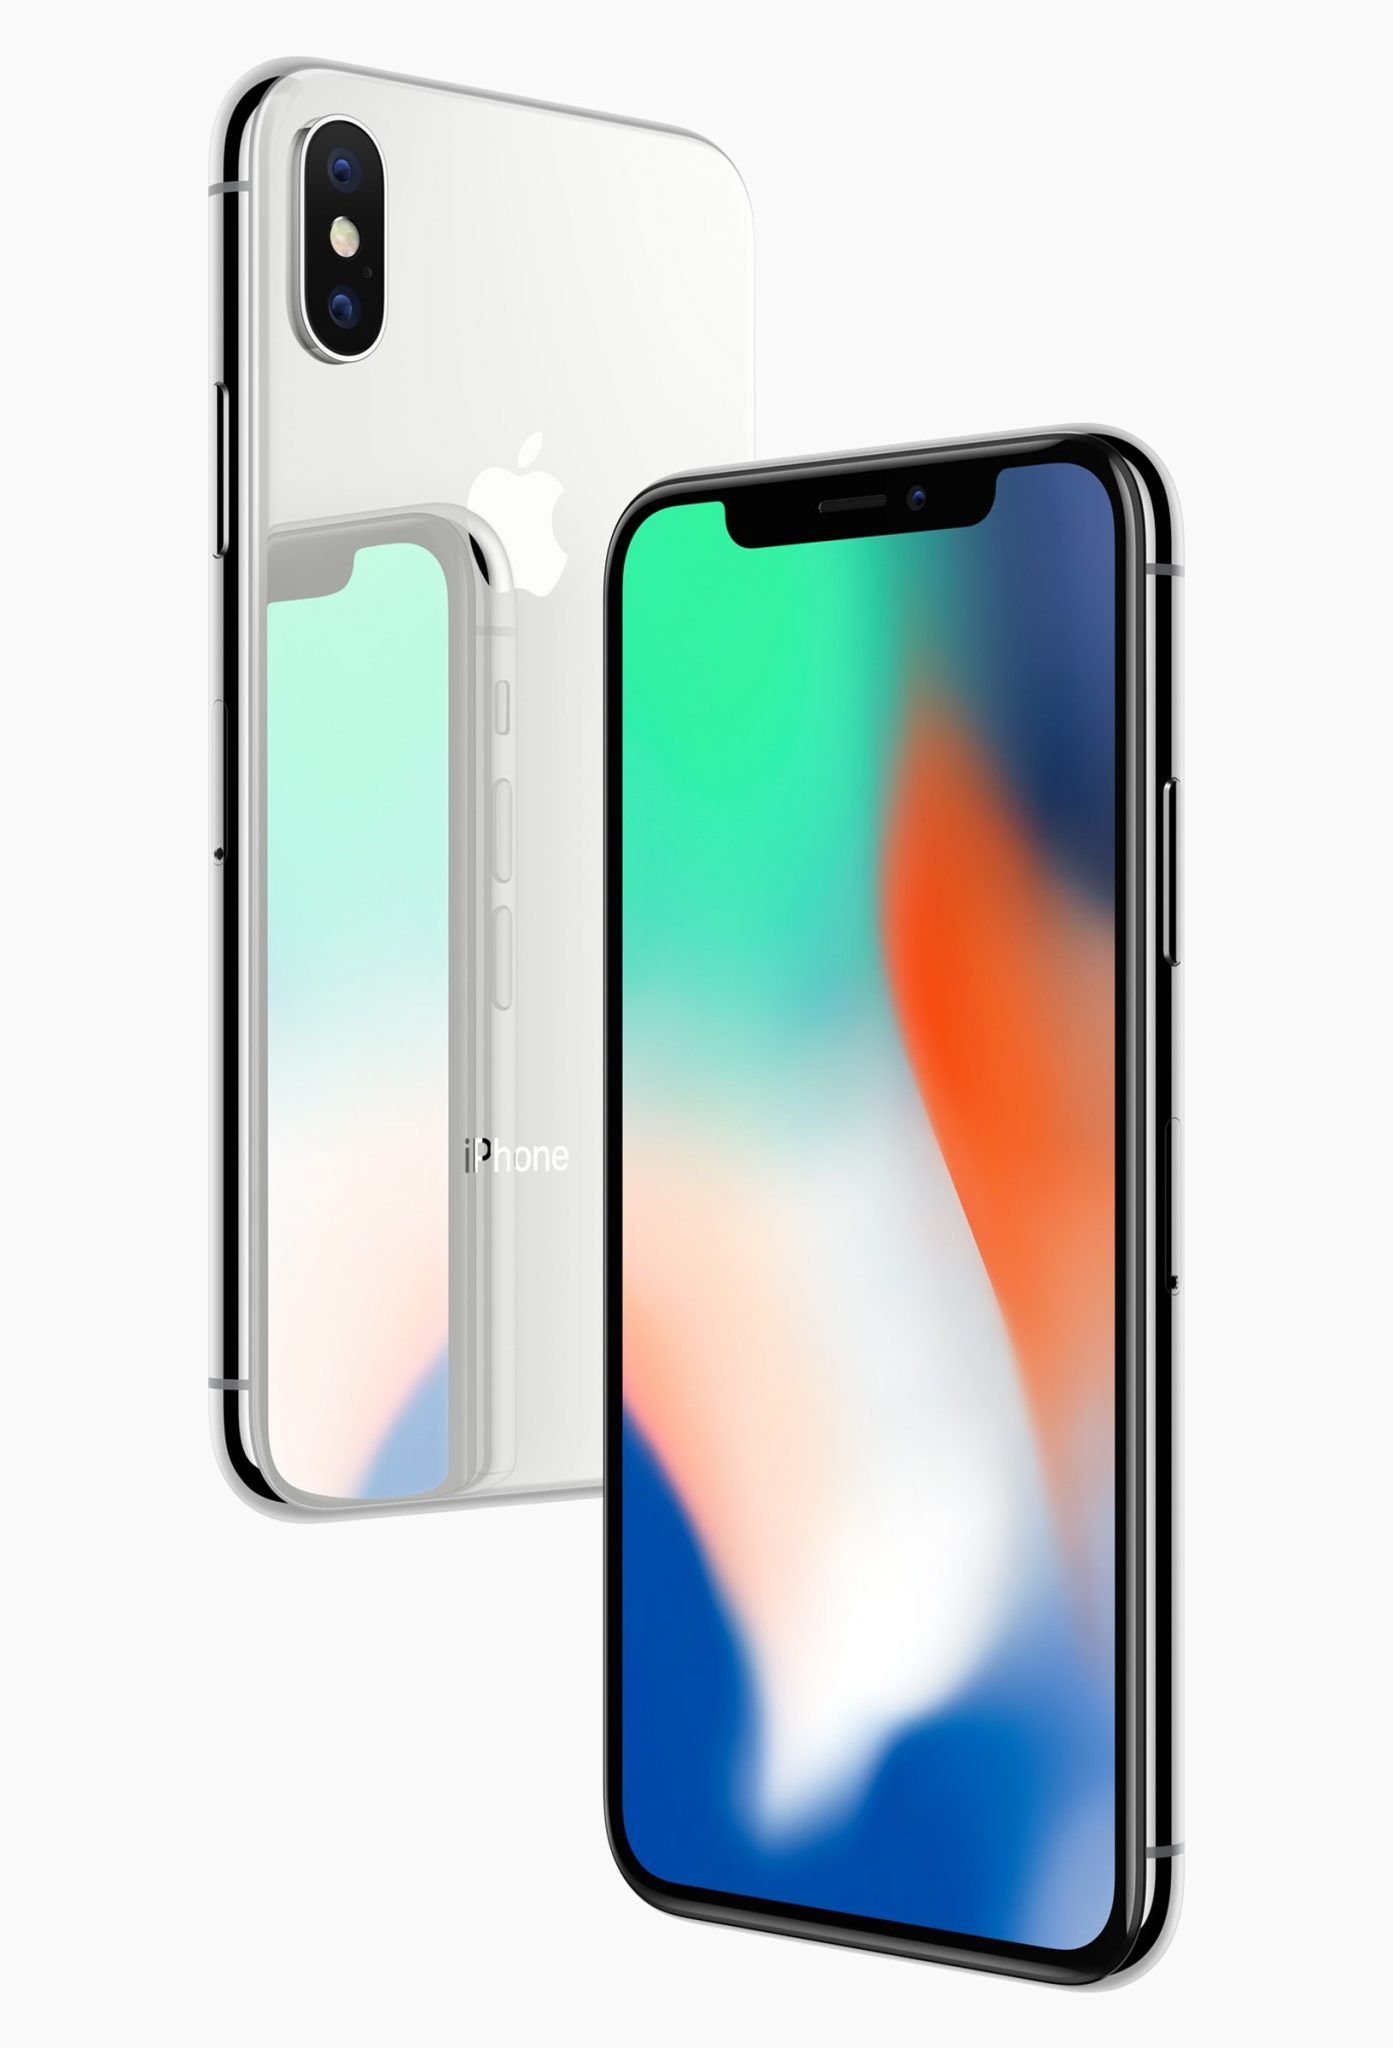 iPhone X Give-Away (3 of them); Test me, No Lie, I Will Share Results Publicly